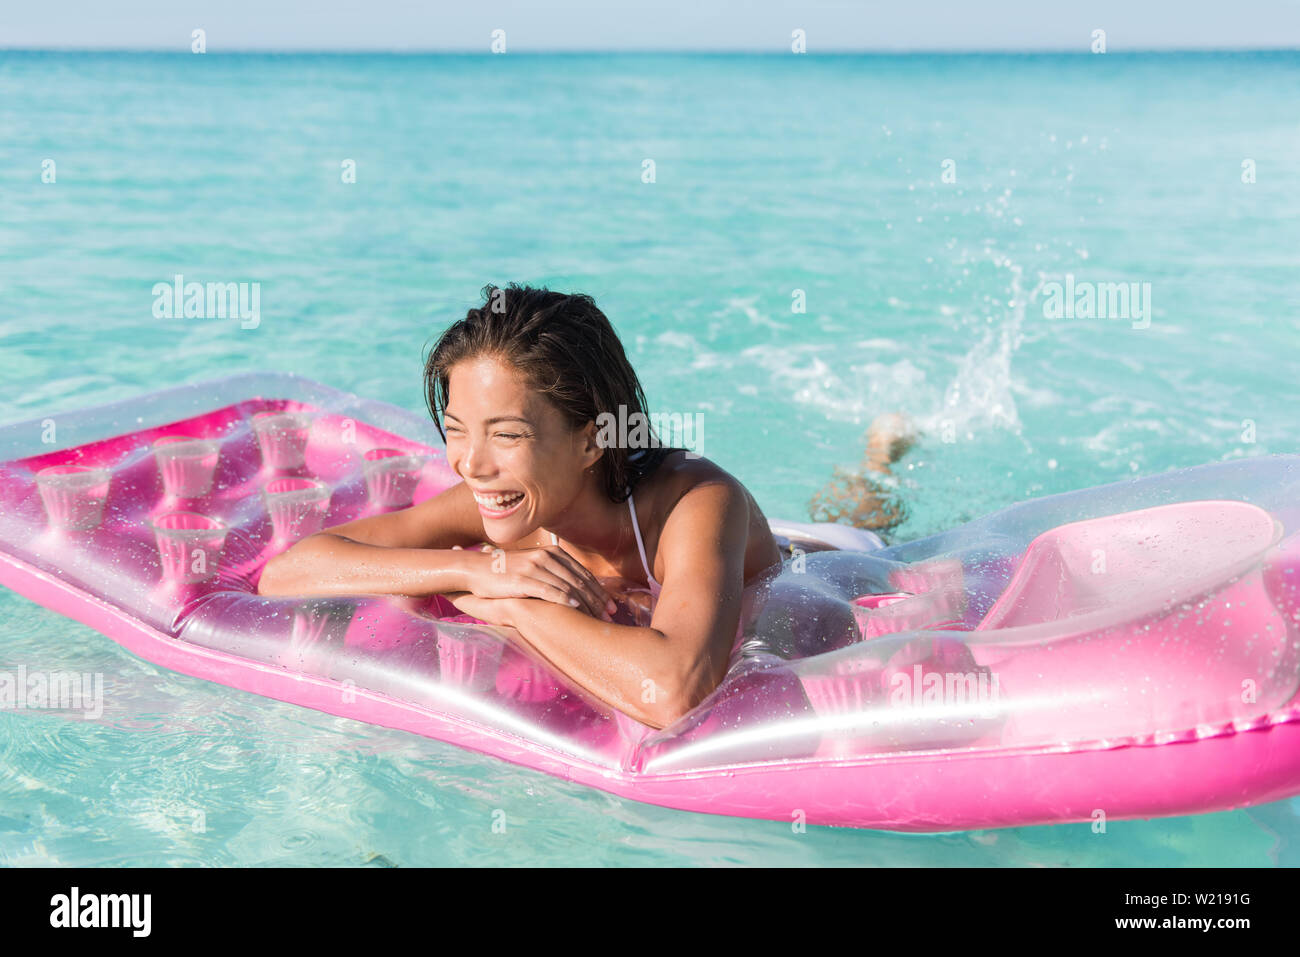 Beach girl having fun splashing water in ocean floating on pink pool float toy air mattress. Asian woman relaxing in the sun swimming in the perfect turquoise sea at holiday resort. Stock Photo